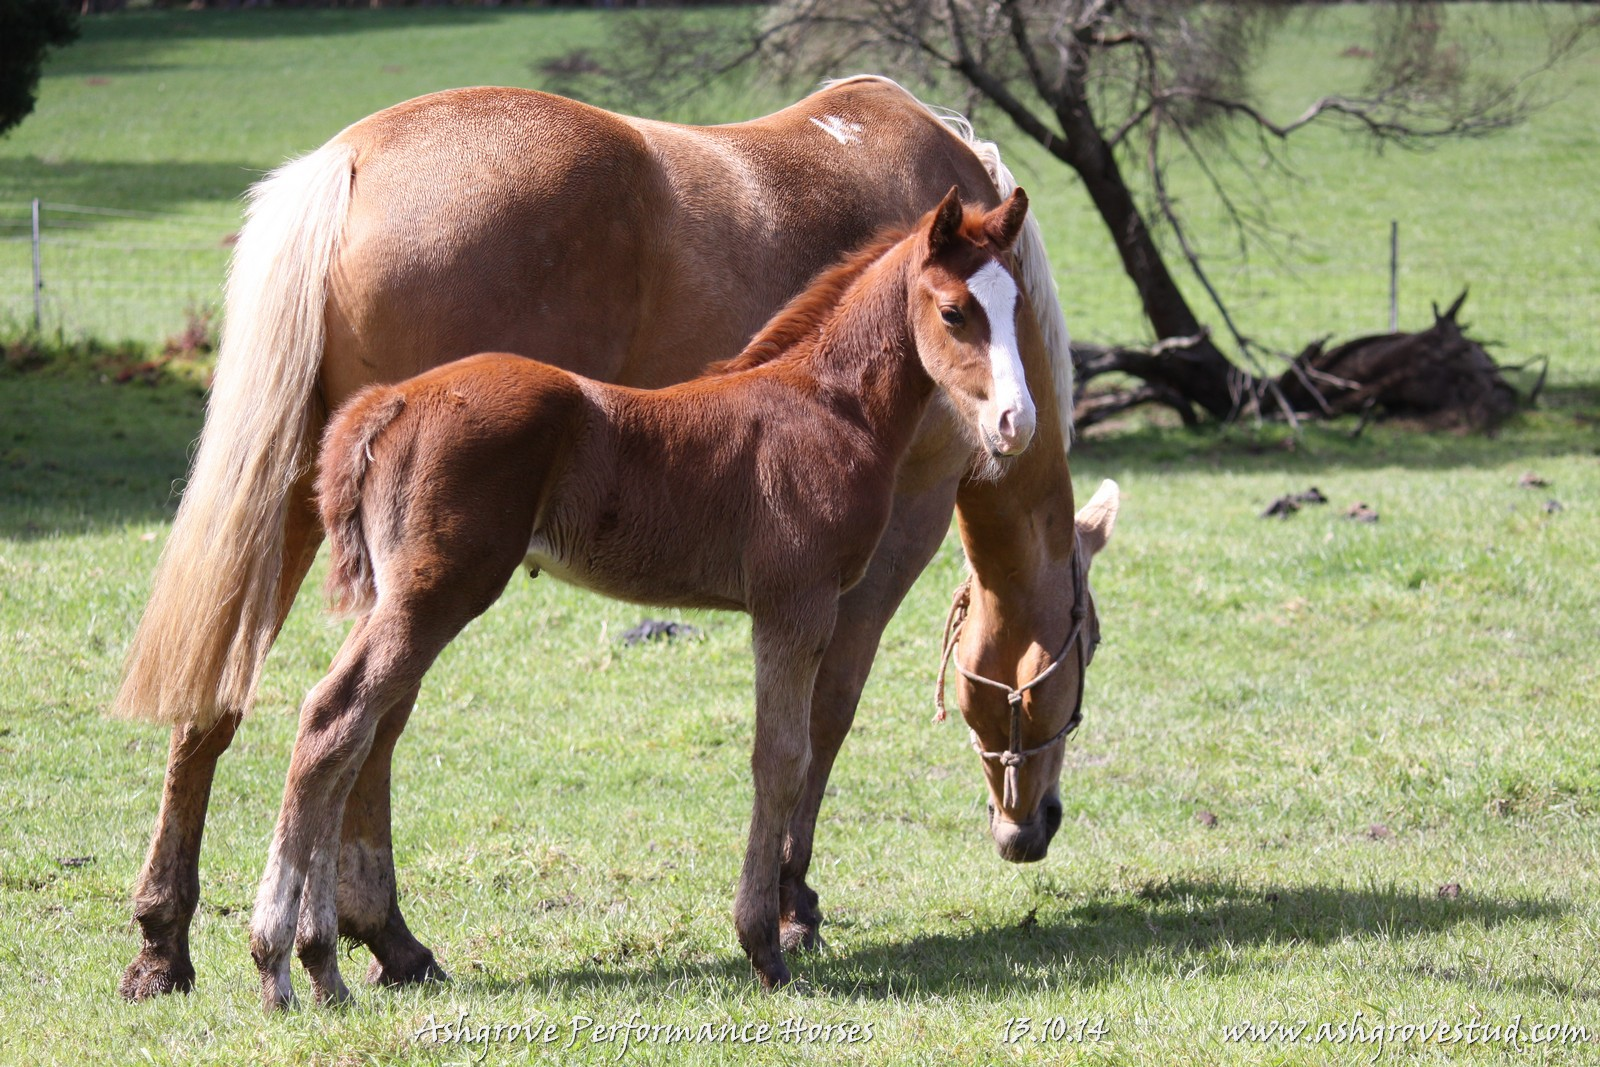 Foals and yearlings 13.10.14 366